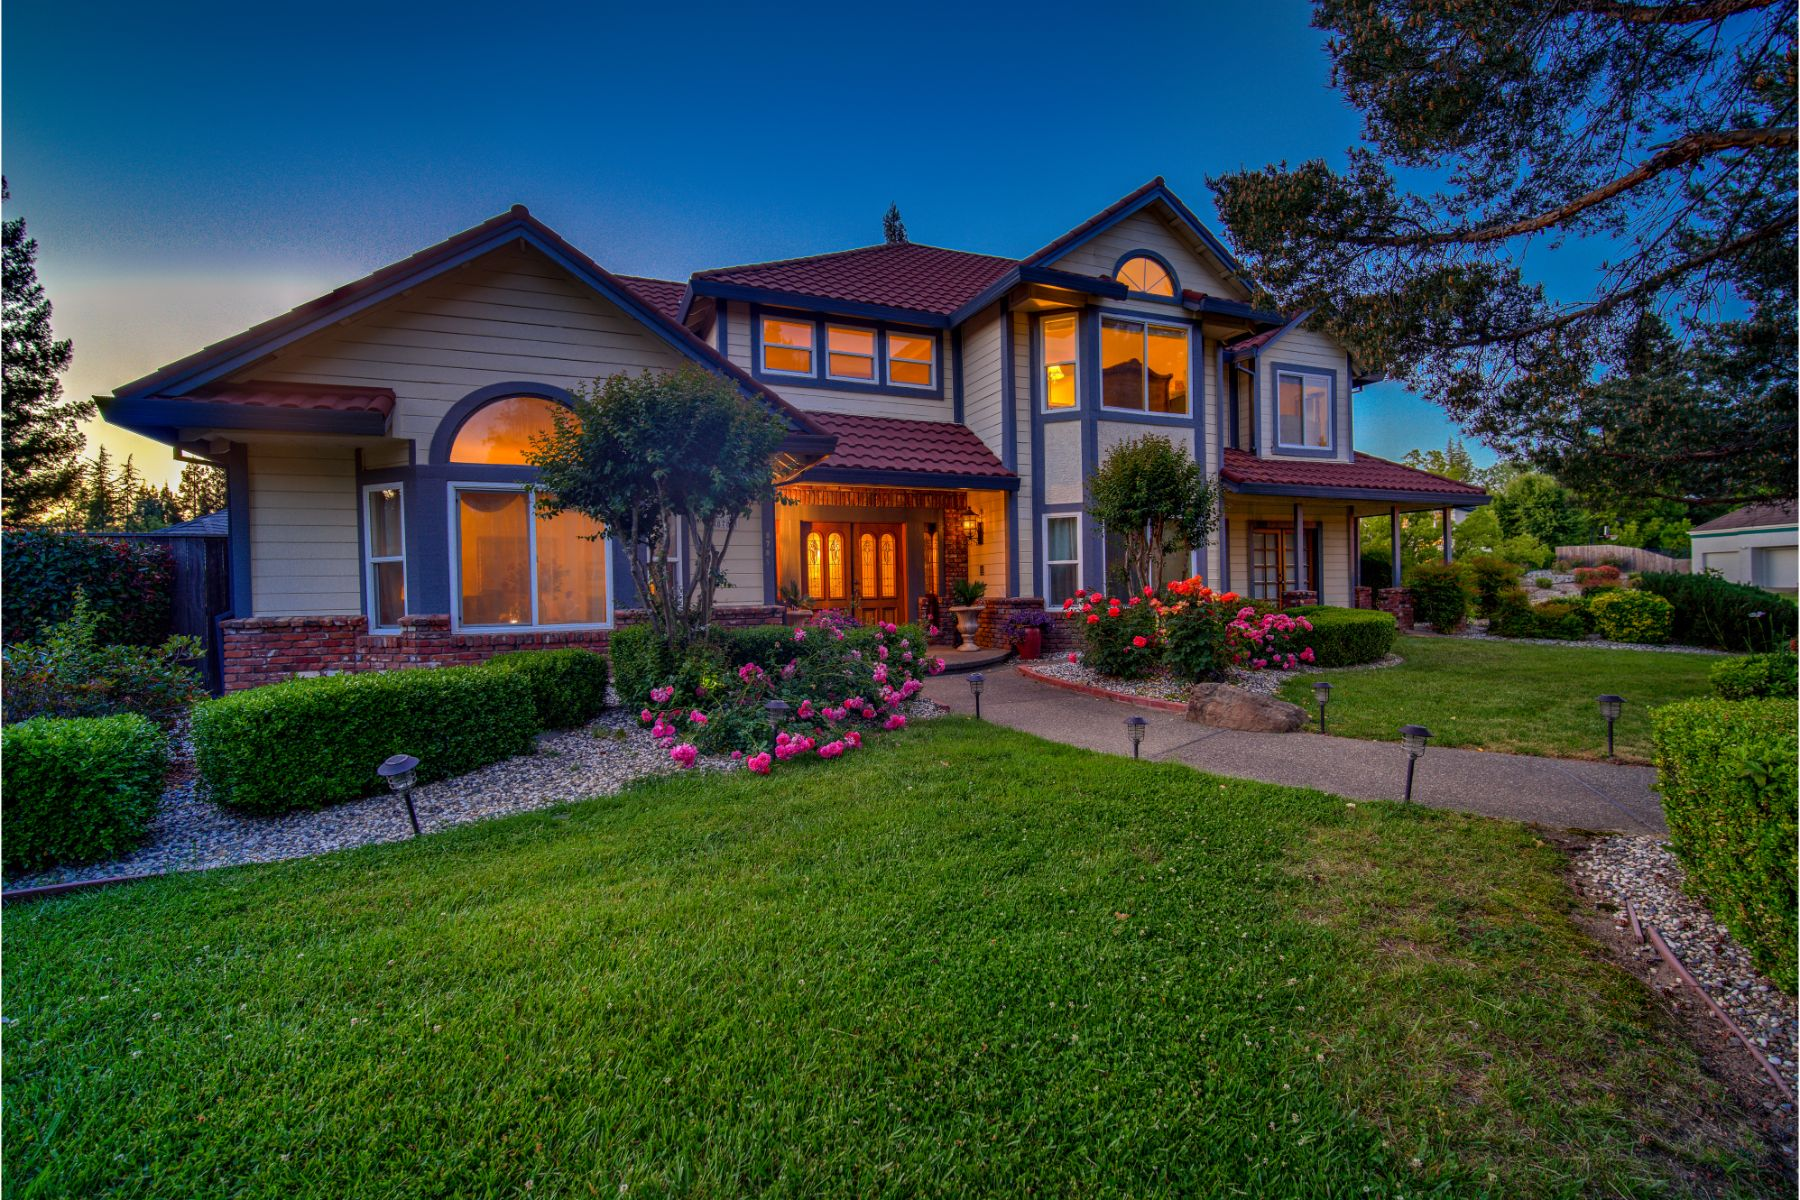 Single Family Homes for Sale at 8781 Petite Creek Drive, Roseville, CA 95661 8781 Petite Creek Drive Roseville, California 95661 United States